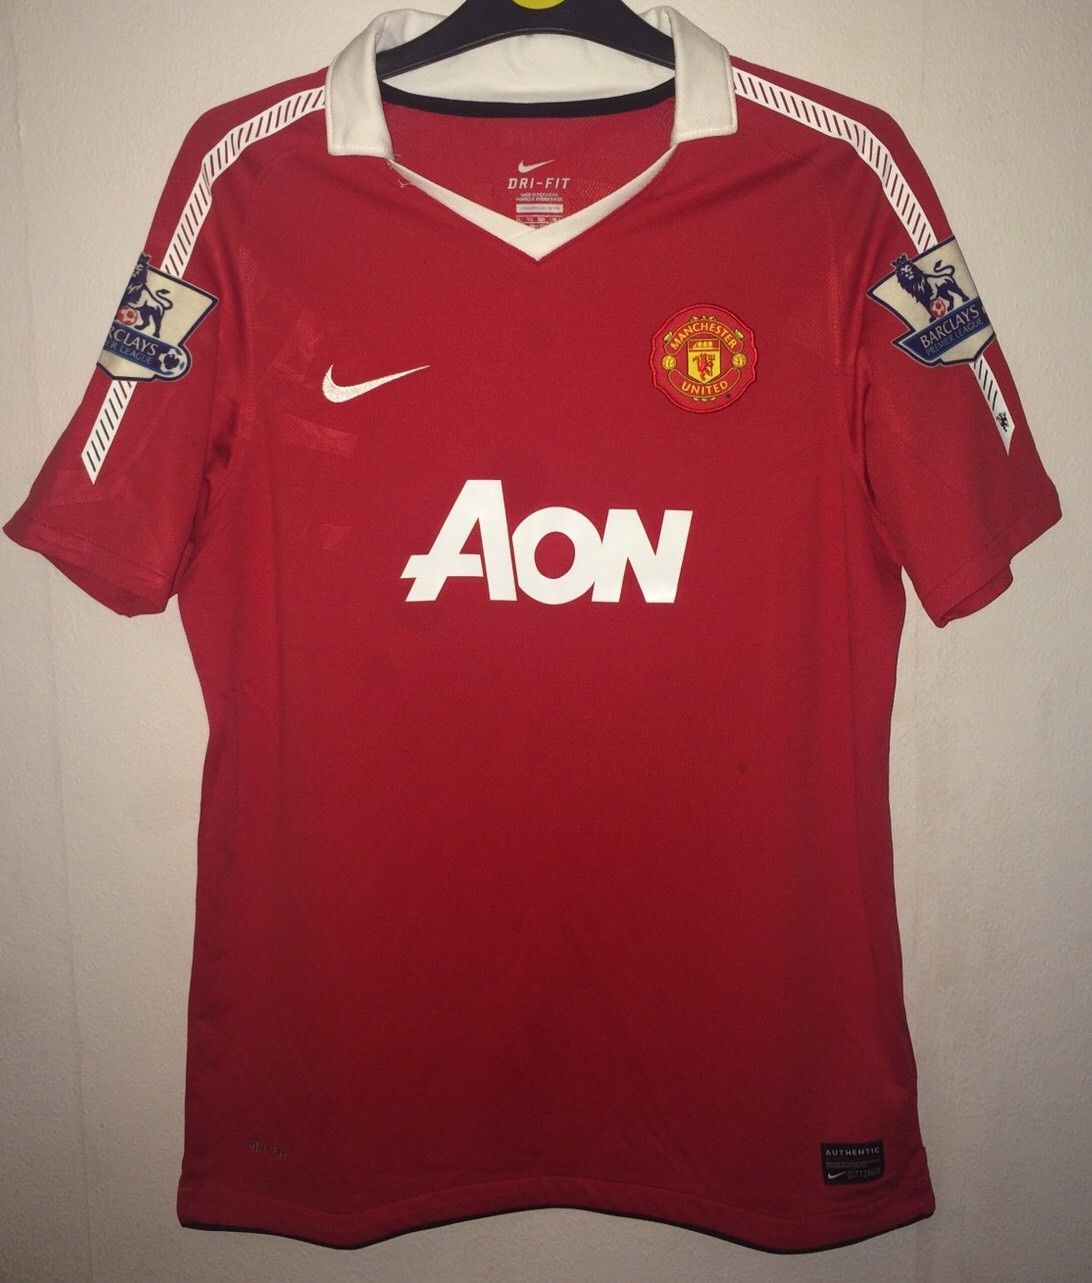 separation shoes 98a21 78c0d Manchester United Football Shirt 2010/11 Adults Medium Nike